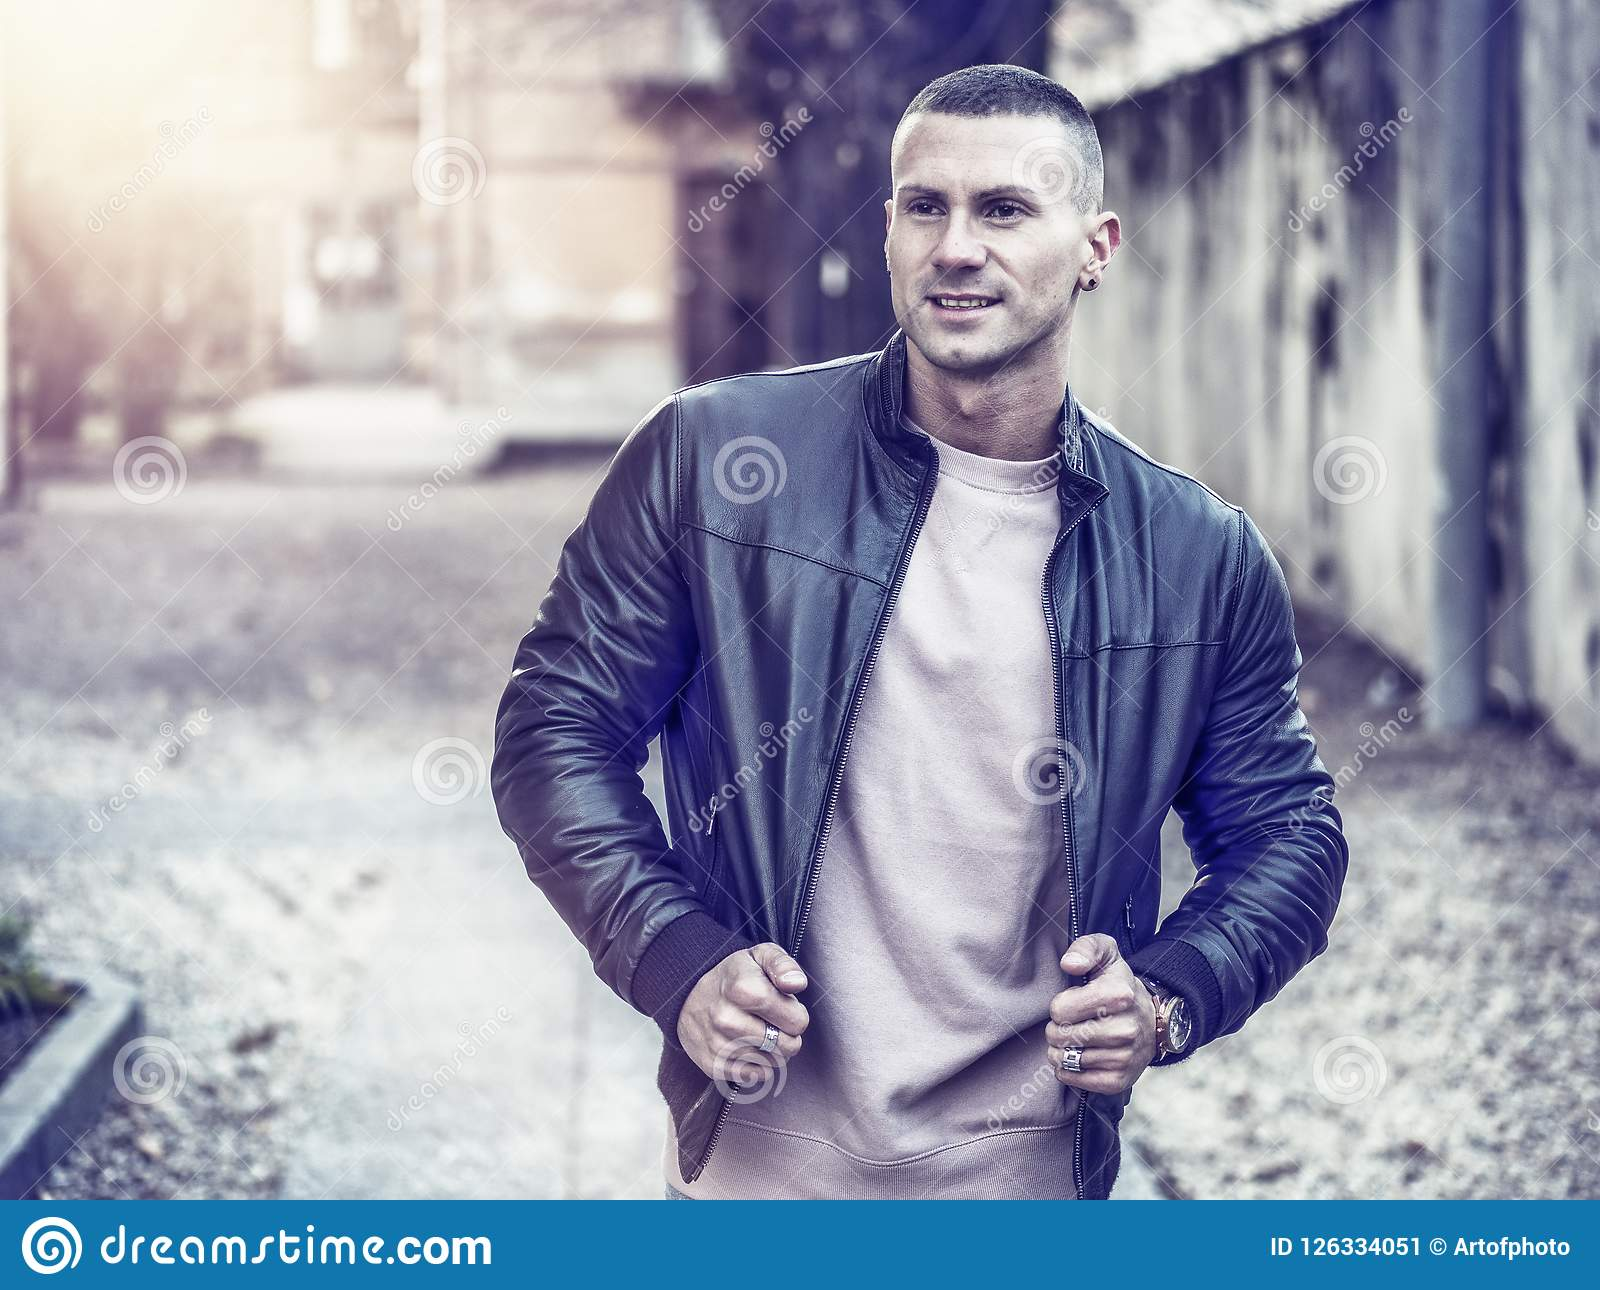 c59e442b One handsome young man in urban setting in European city, standing, wearing  black leather jacket and jeans. More similar stock images